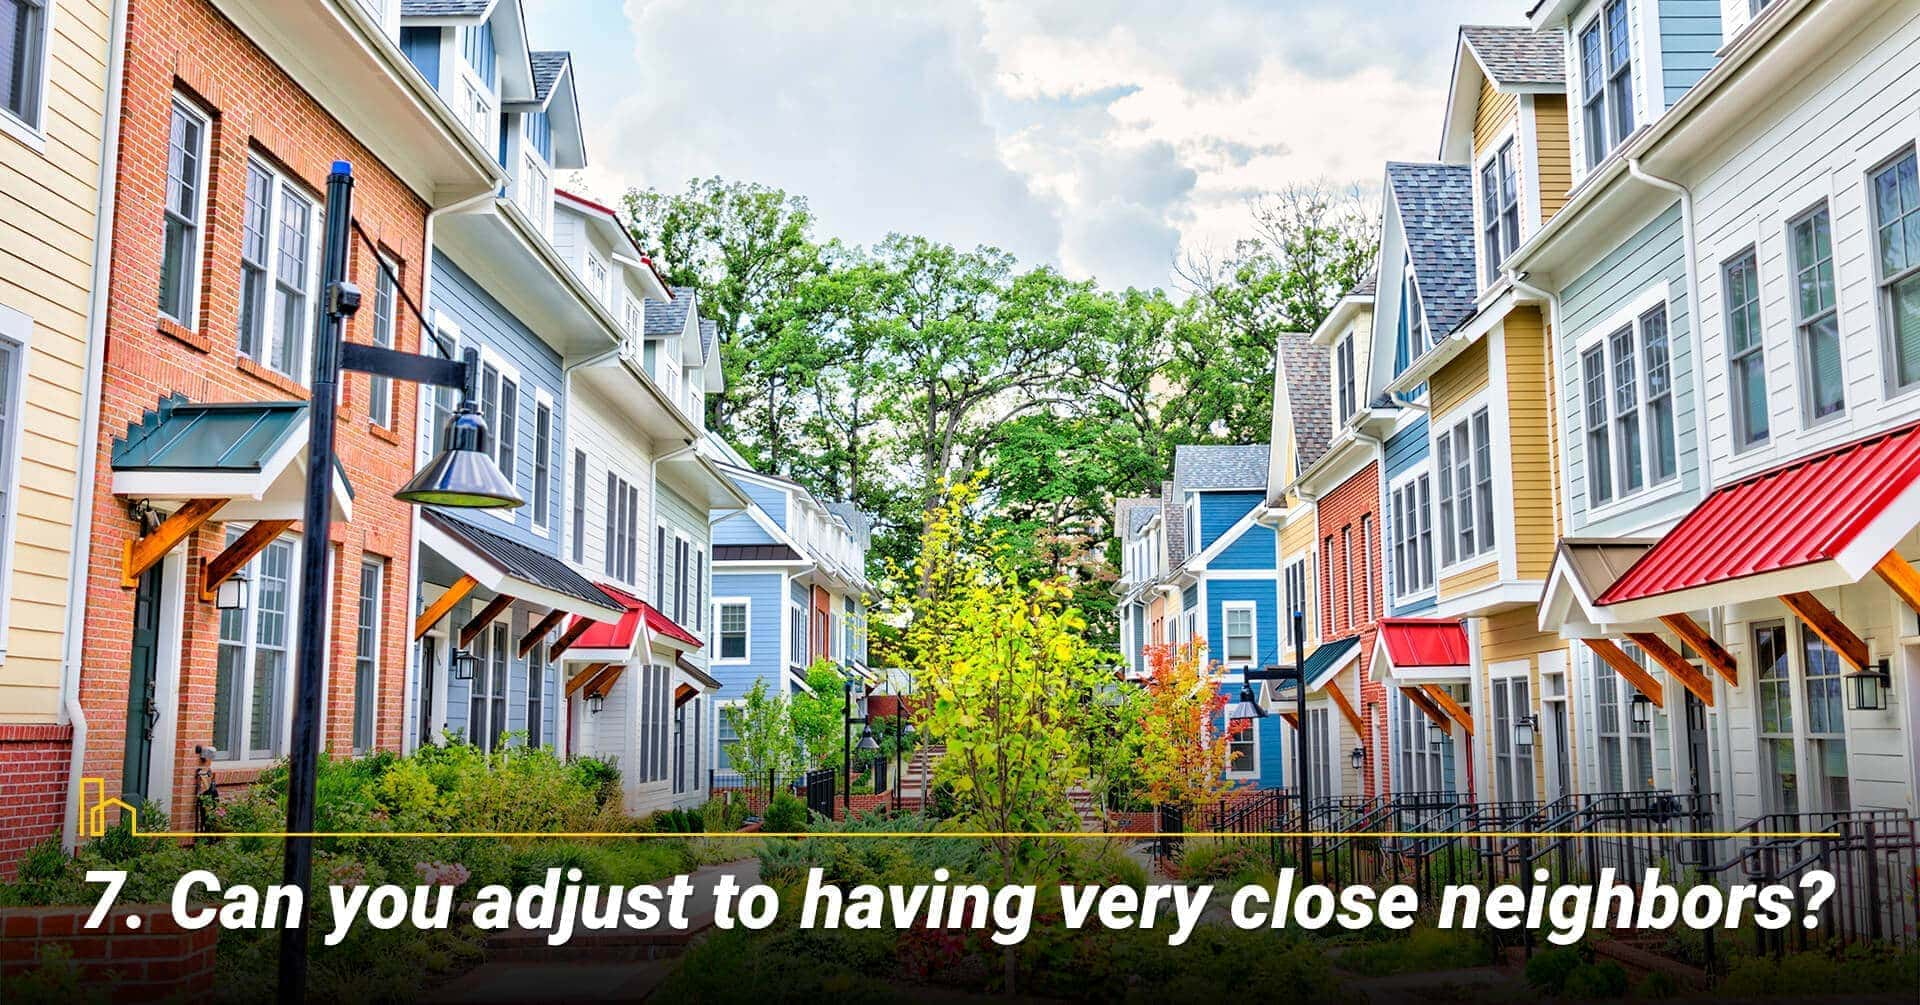 Can you adjust to having very close neighbors?